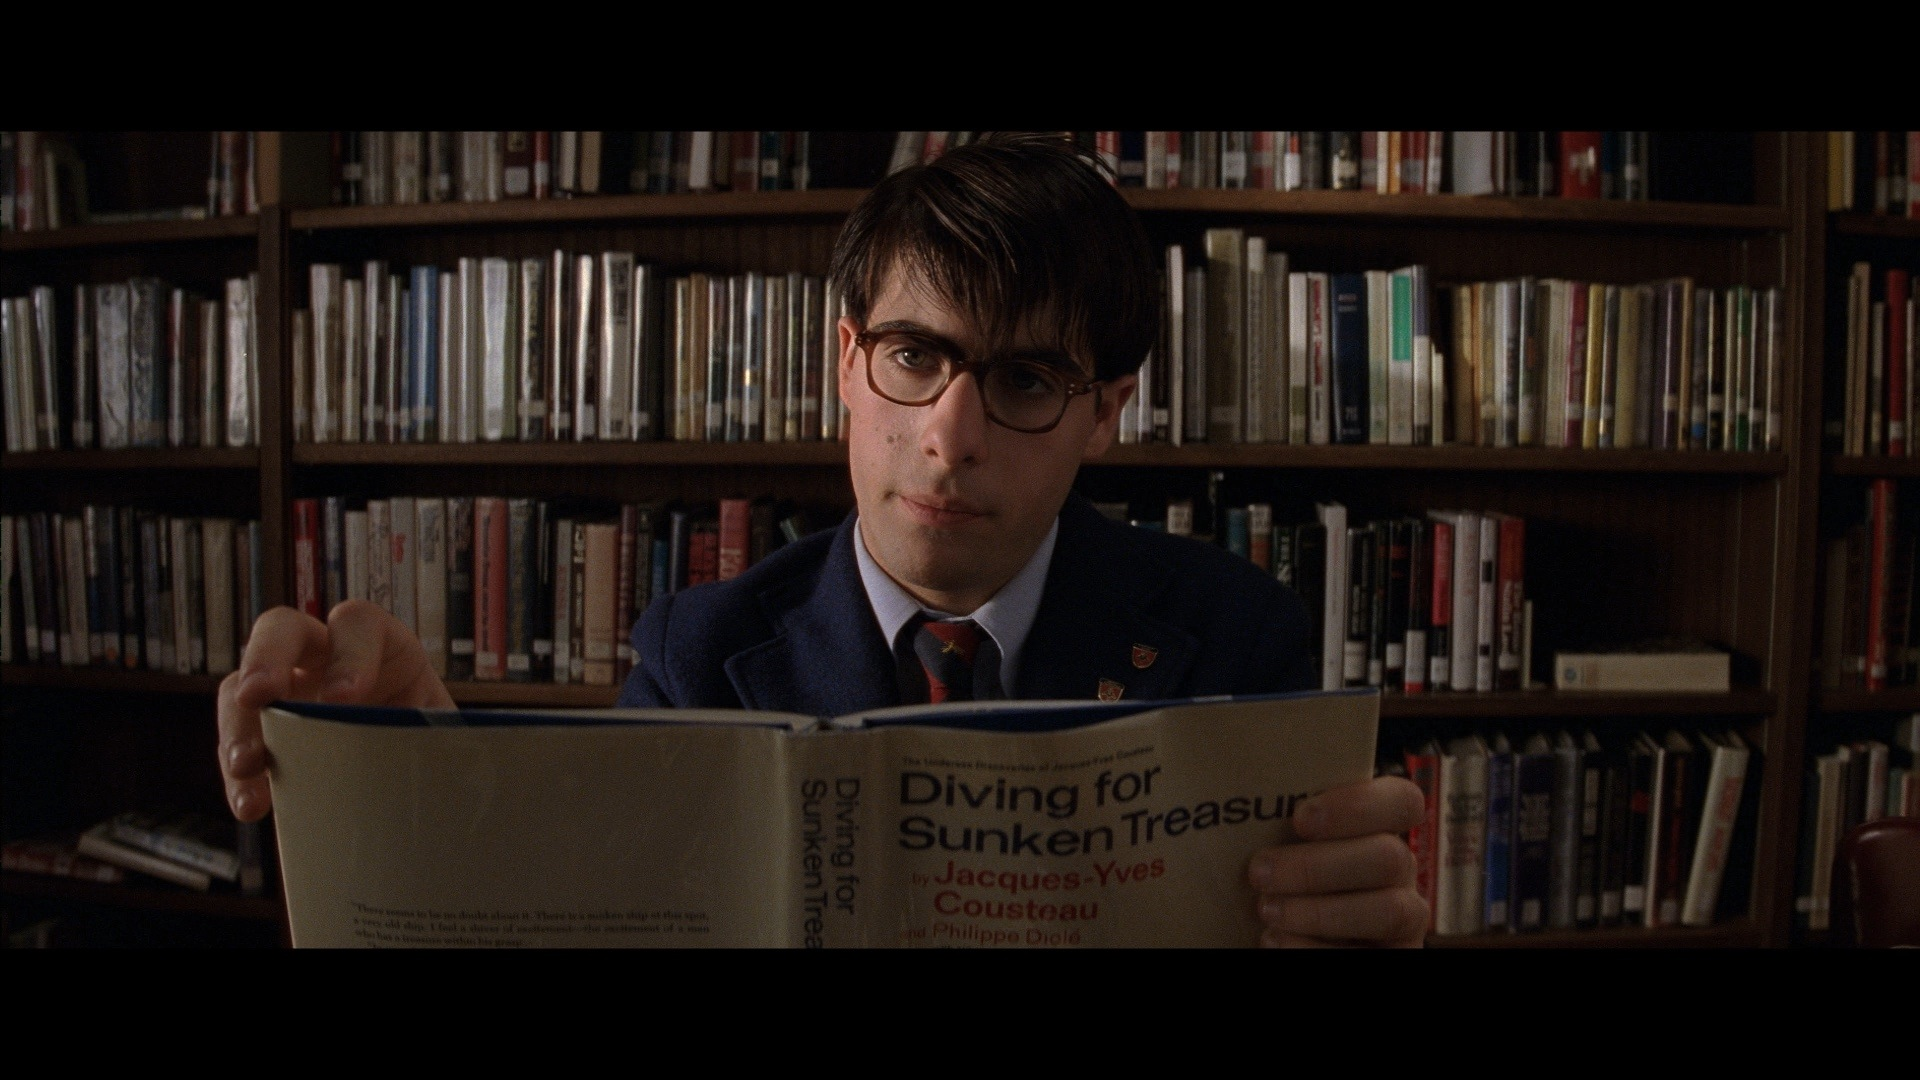 rushmore wes anderson essay Color theory and social structure in the films of wes anderson by vaughn vreeland — 35 keywords: color theory, production design, wes anderson, media effects.